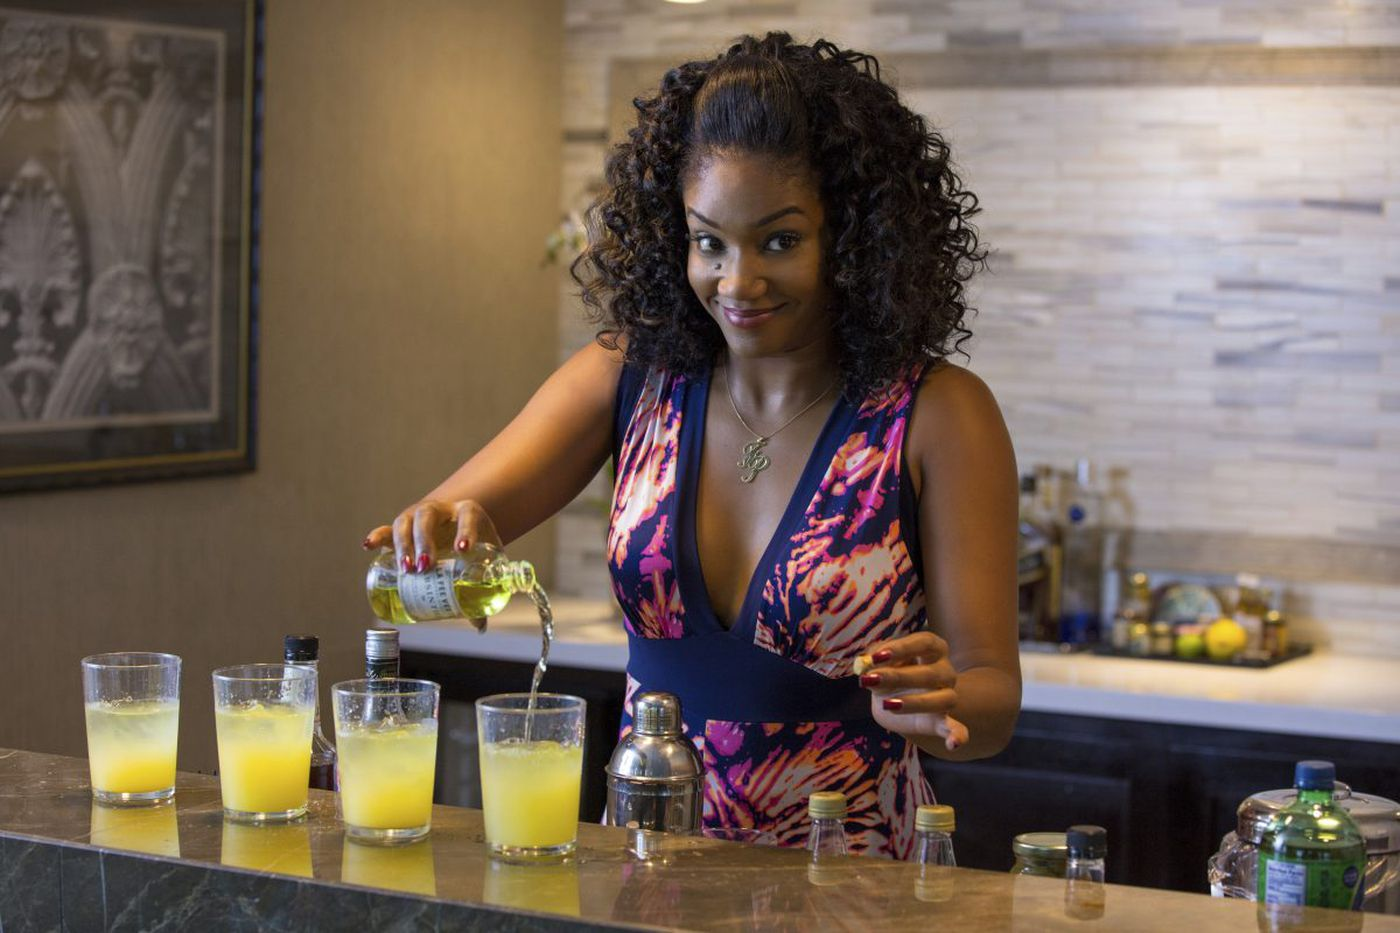 Steve & Mia: Is the grapefruiting technique from 'Girls Trip' real?